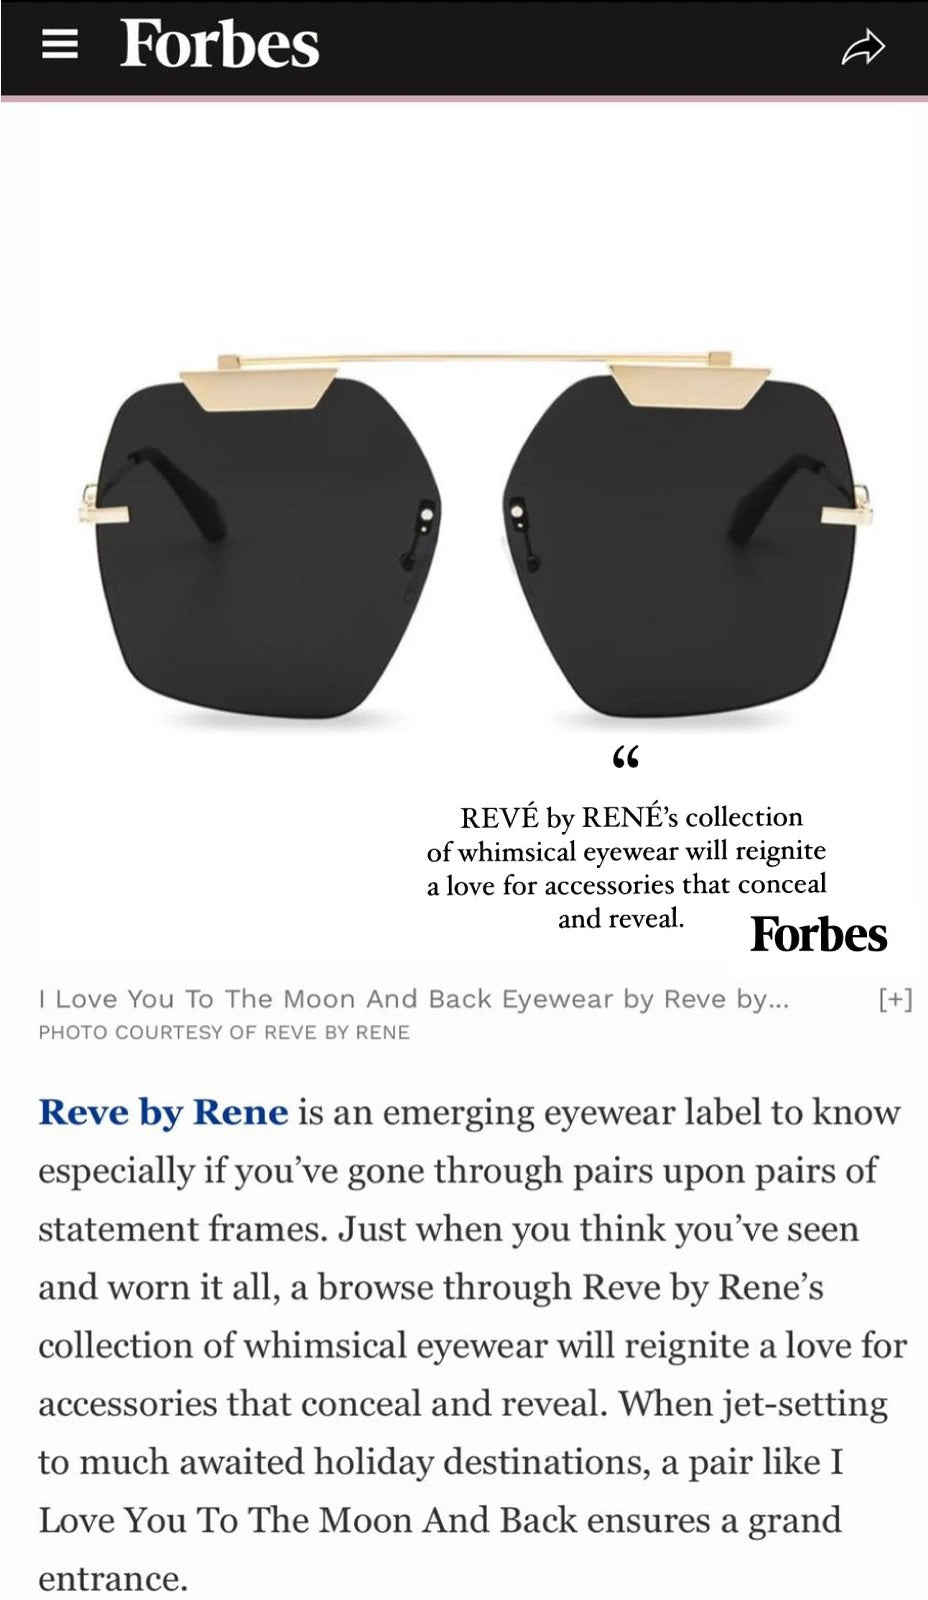 REVE by RENE on Forbes